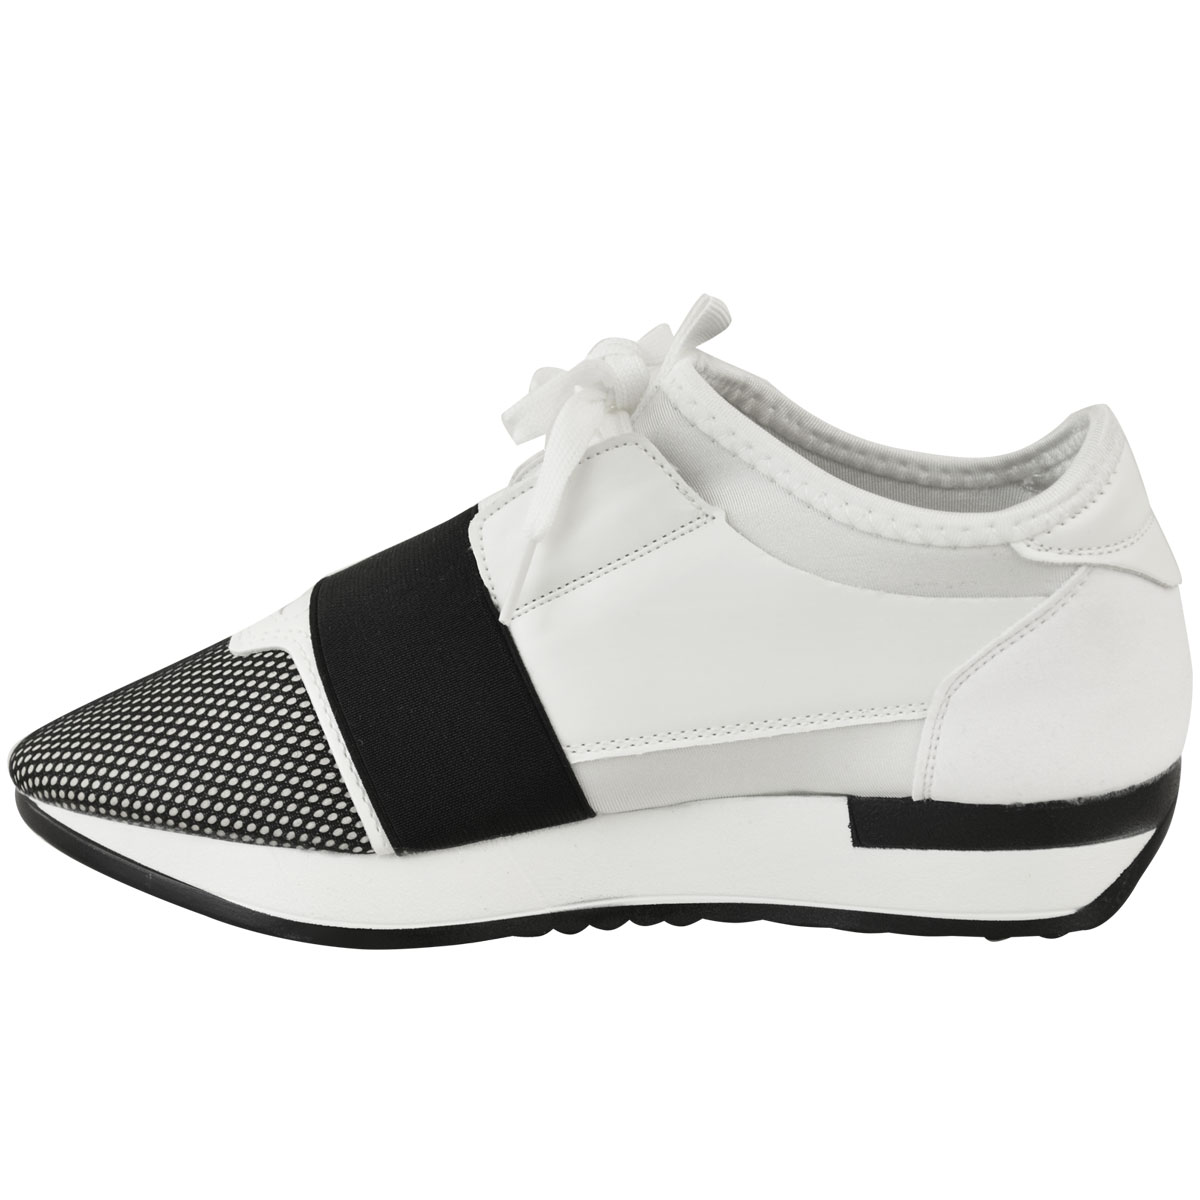 eef2c01d Details about Womens Ladies Sneakers Bali Trainer Runner Stretch Band Gym  Comfy Size